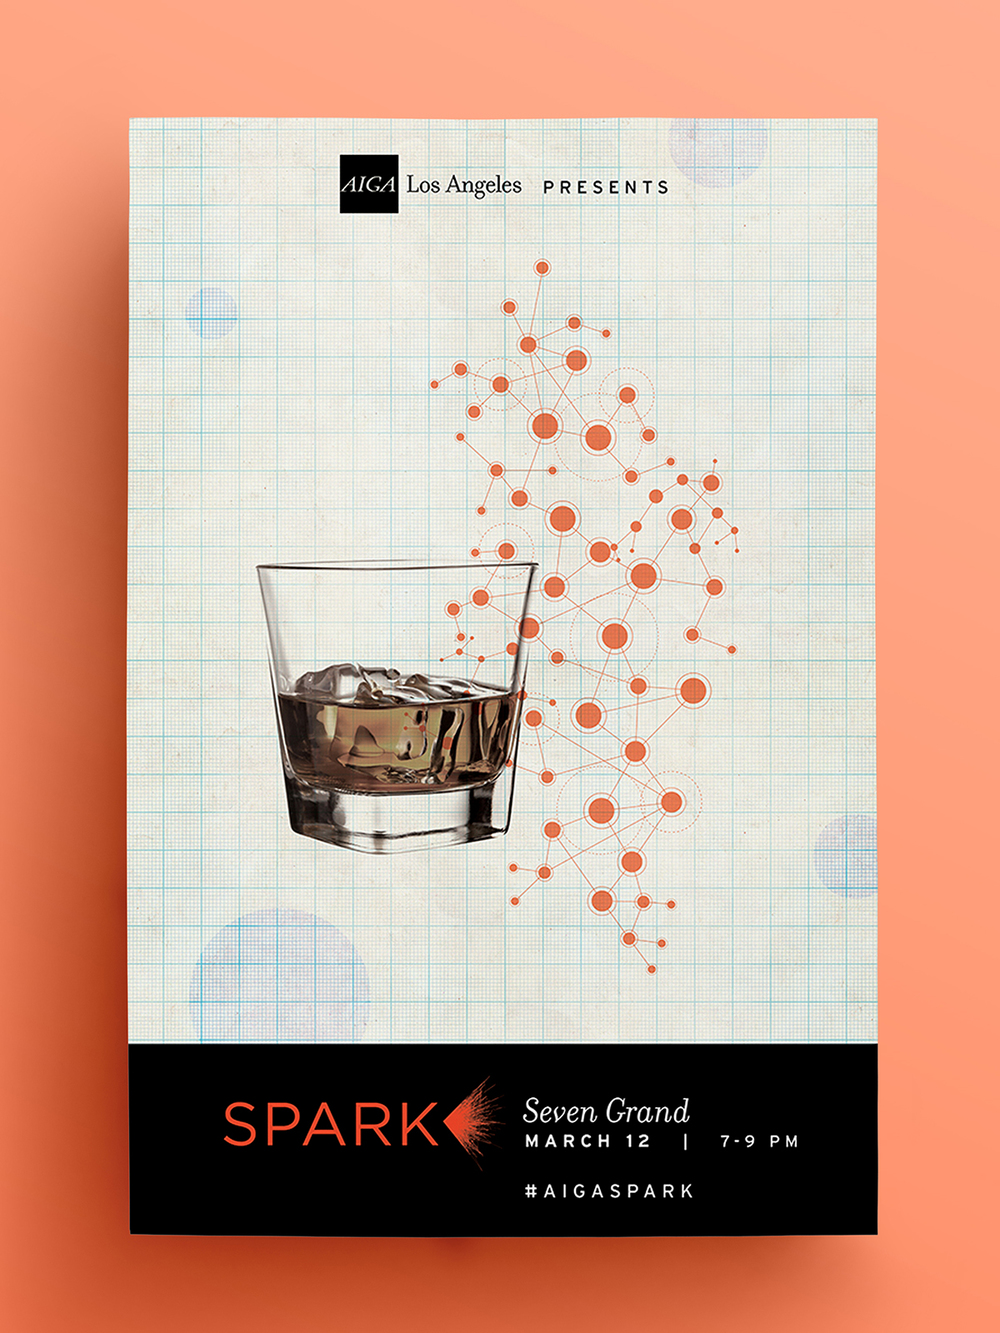 Spark at Seven Grand